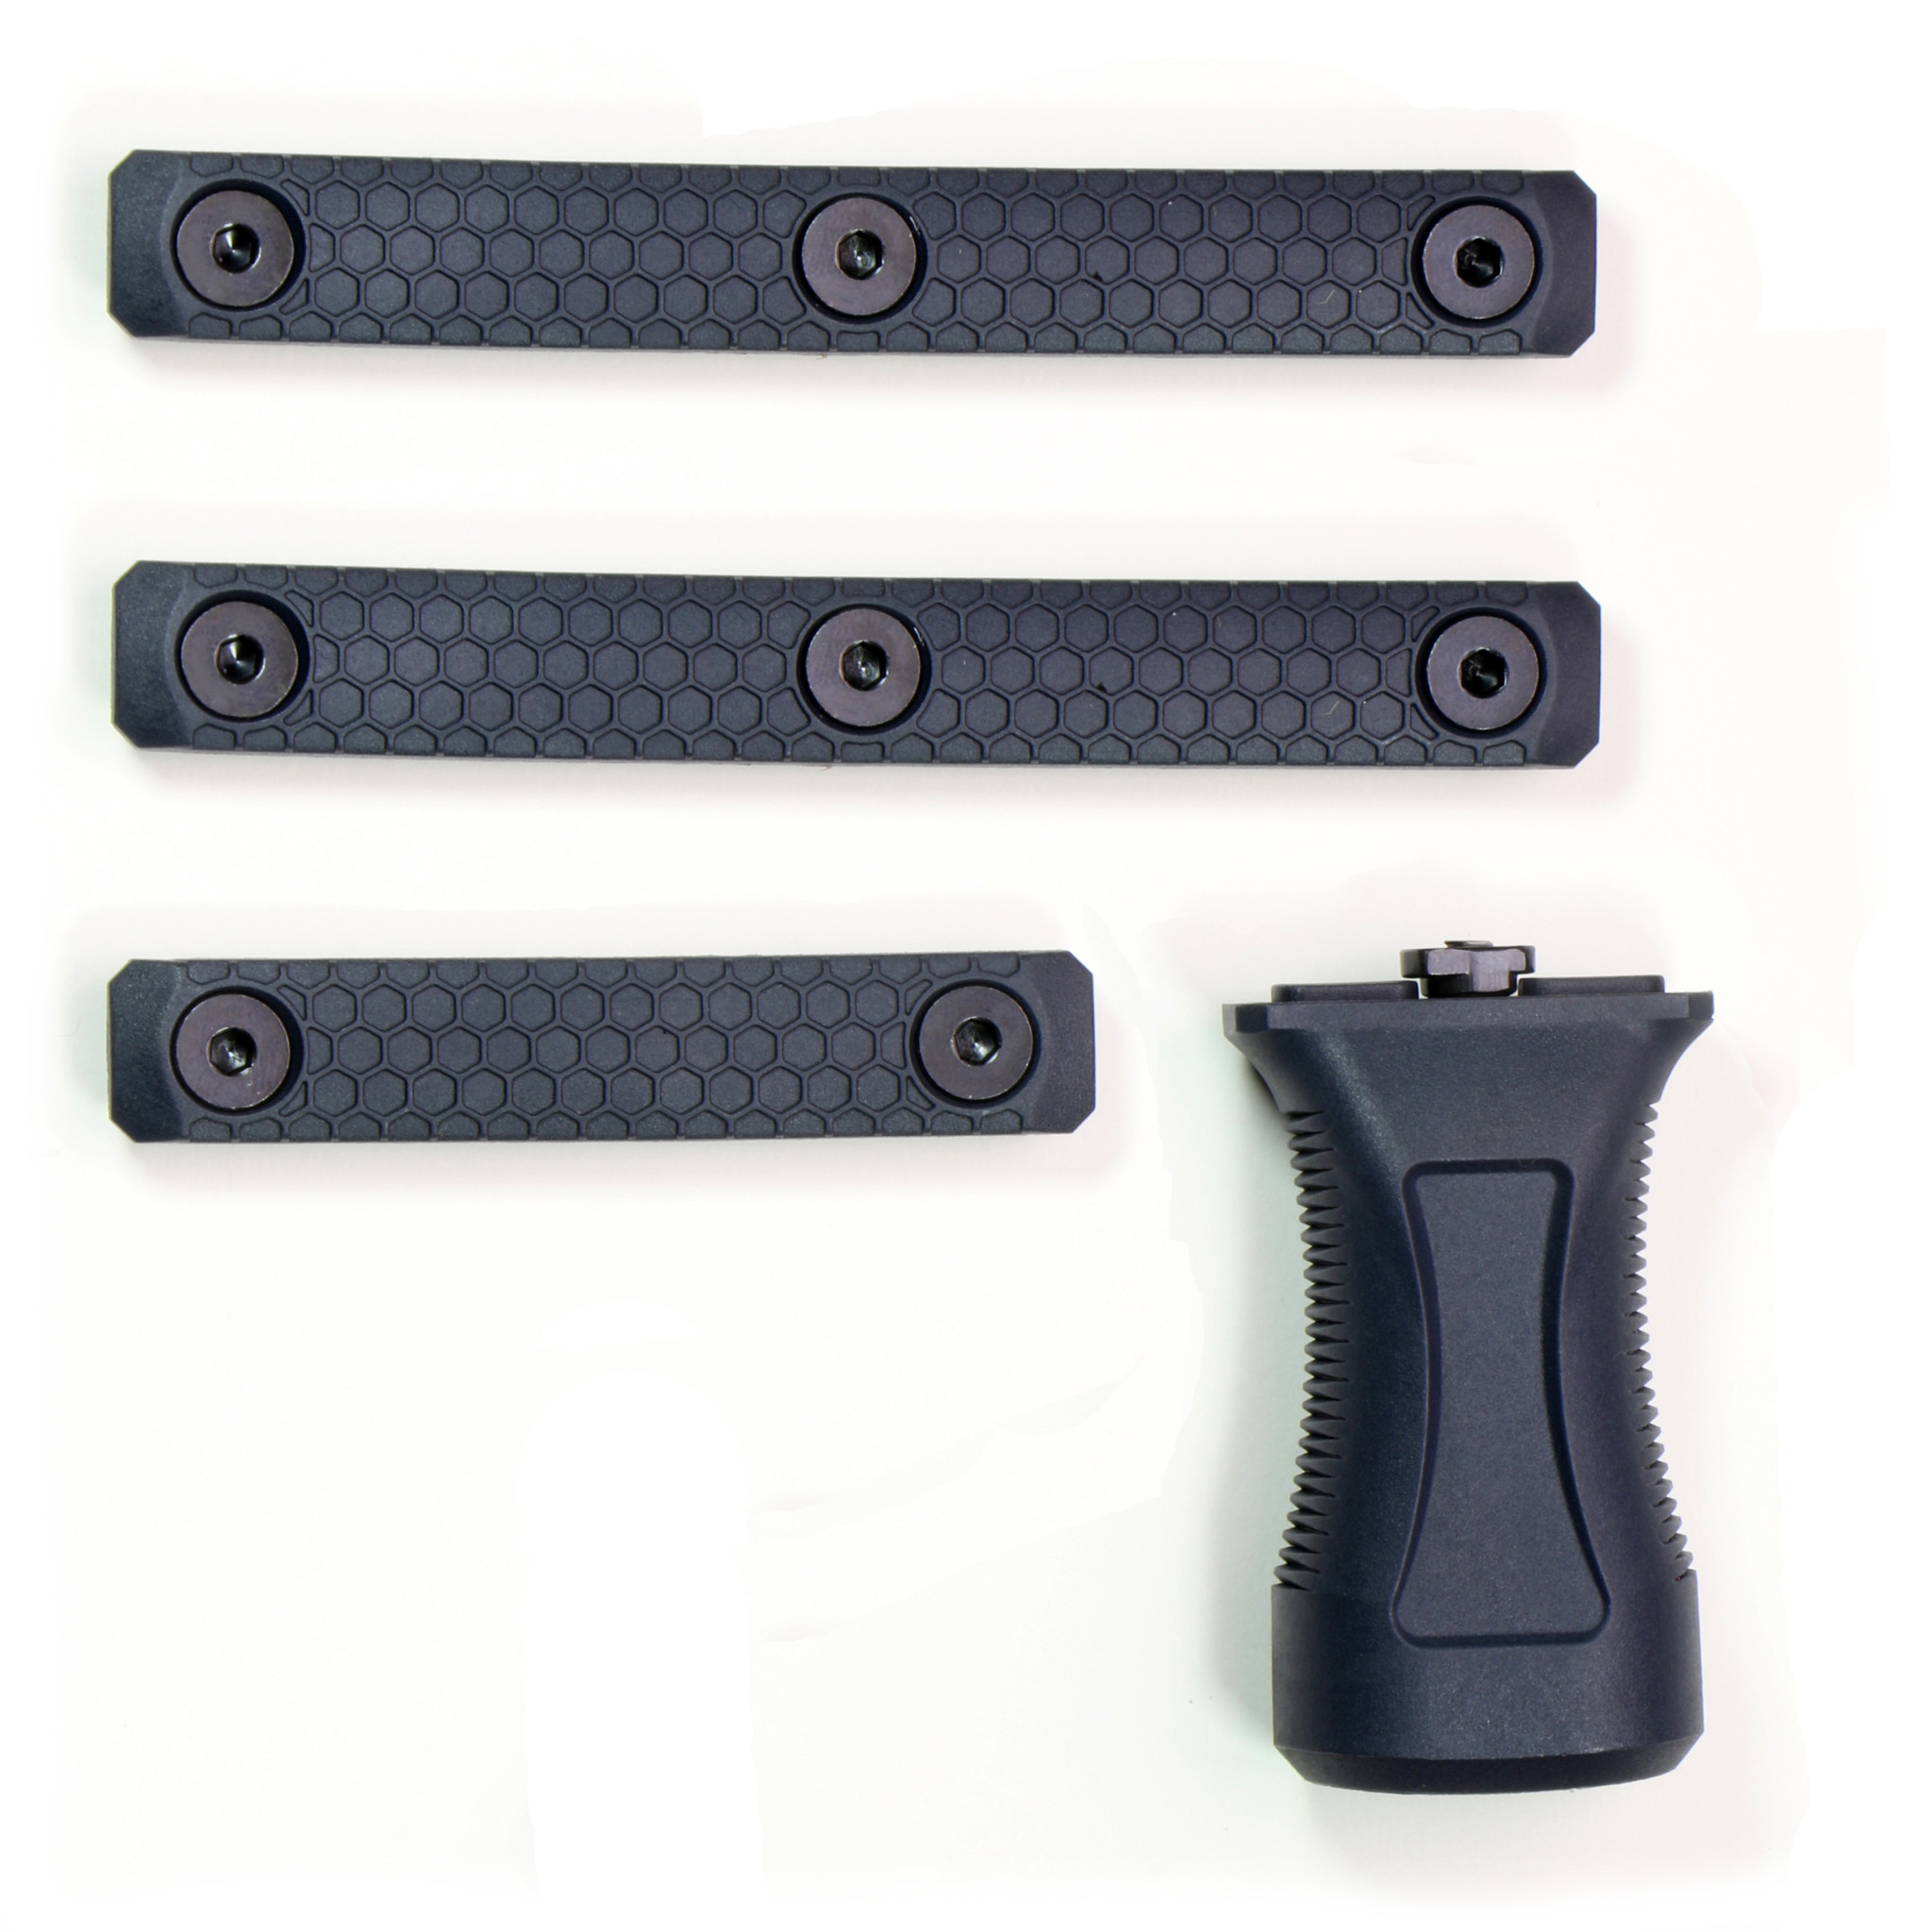 Slate Black Industries SVG + Slate Grip Bundle (M-LOK)